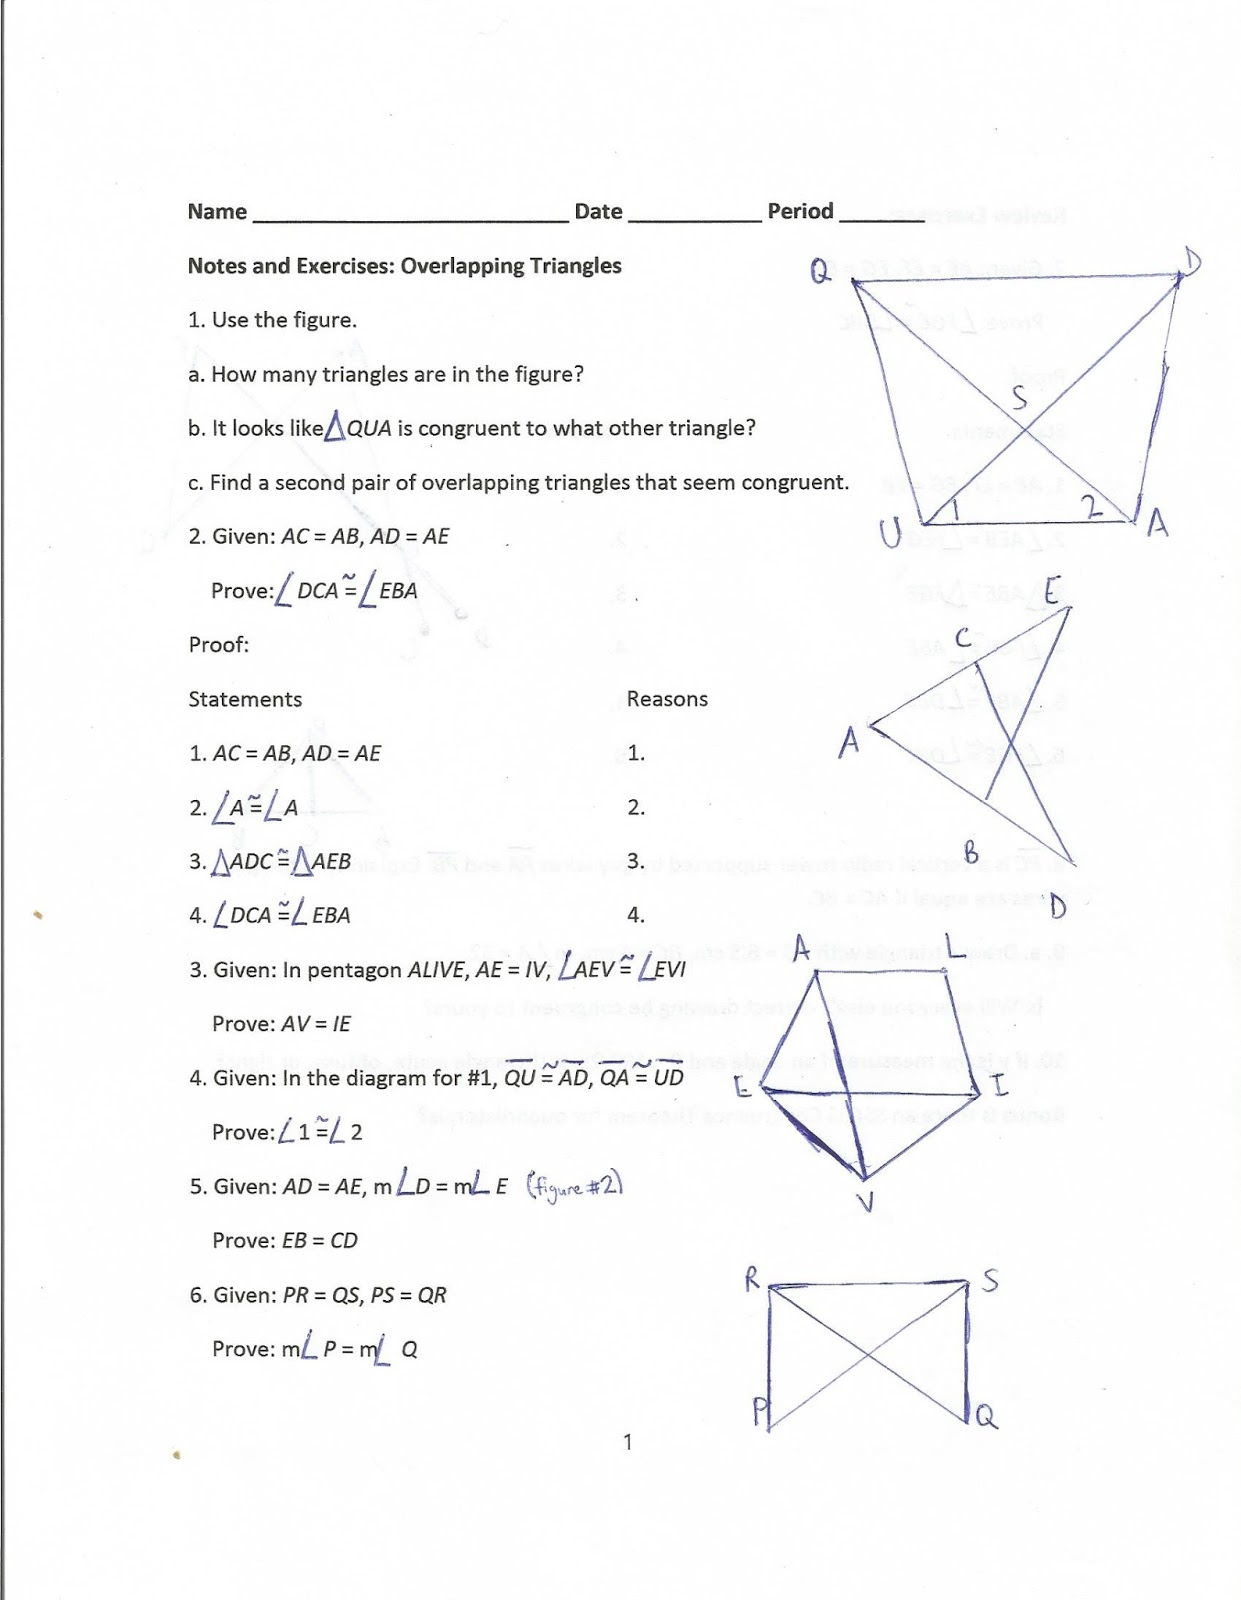 how to write out reasoning for not similar triangles